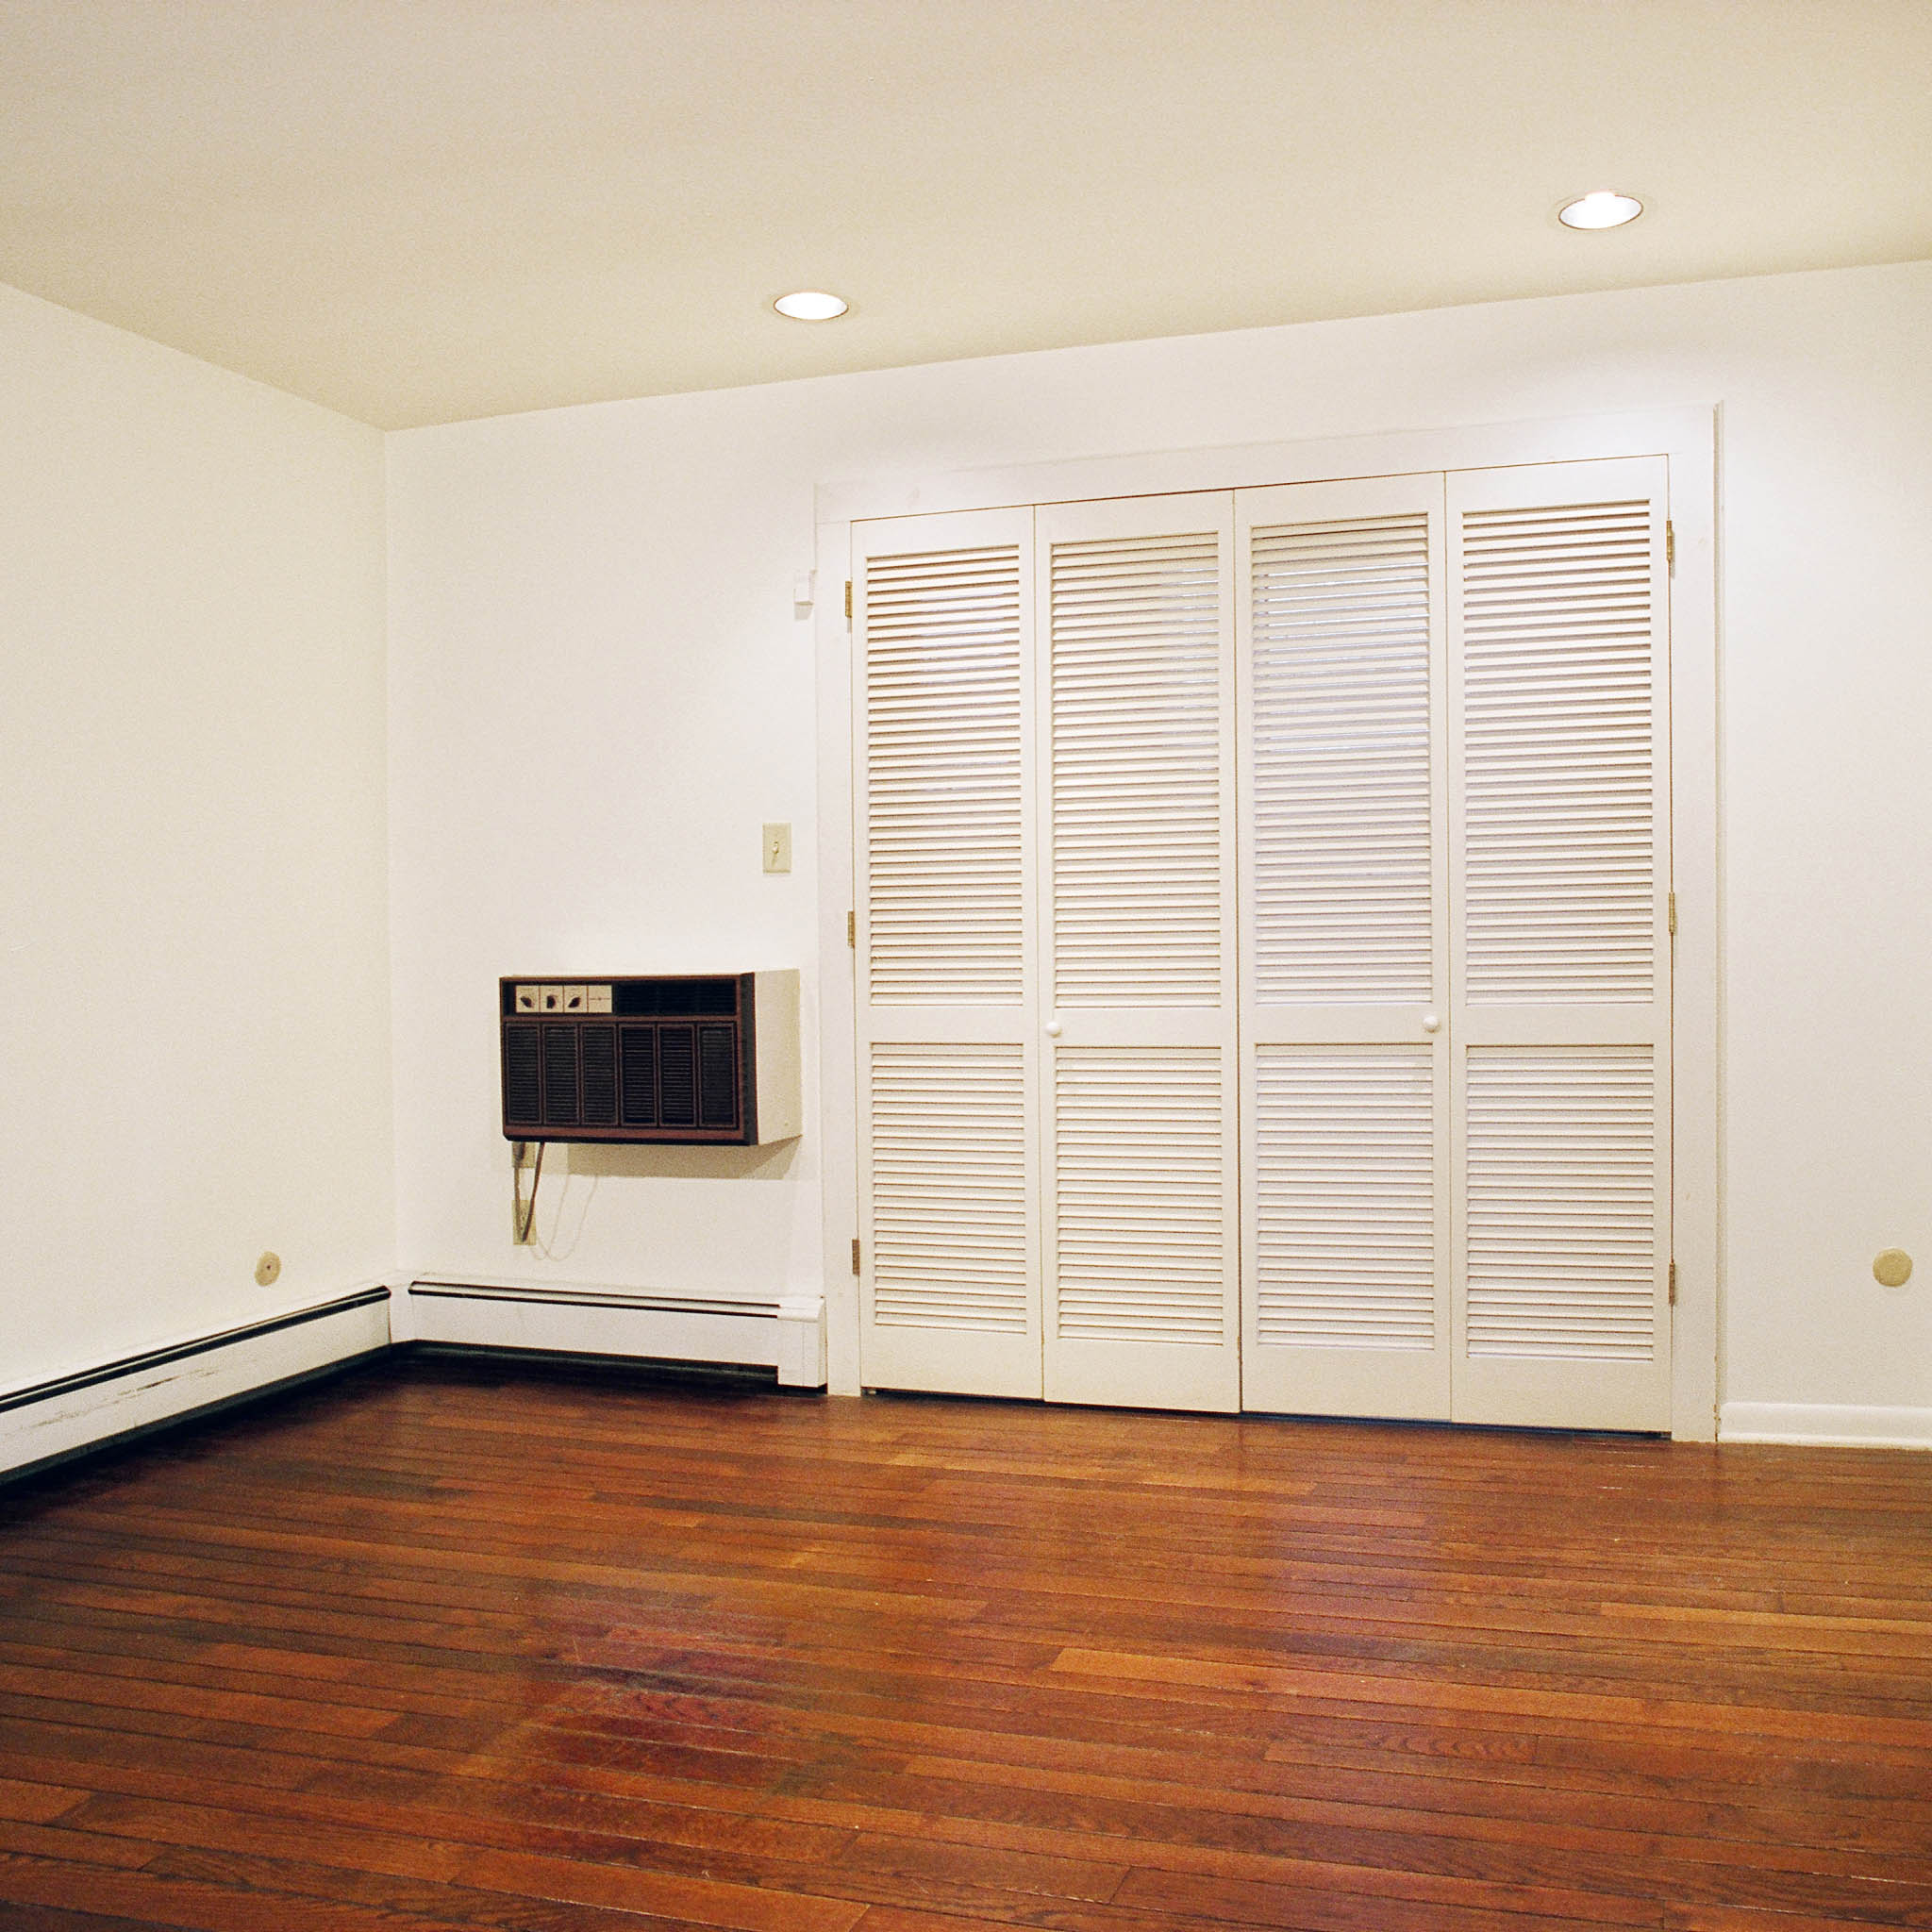 Franklin West 270 Shady Avenue Apt 11